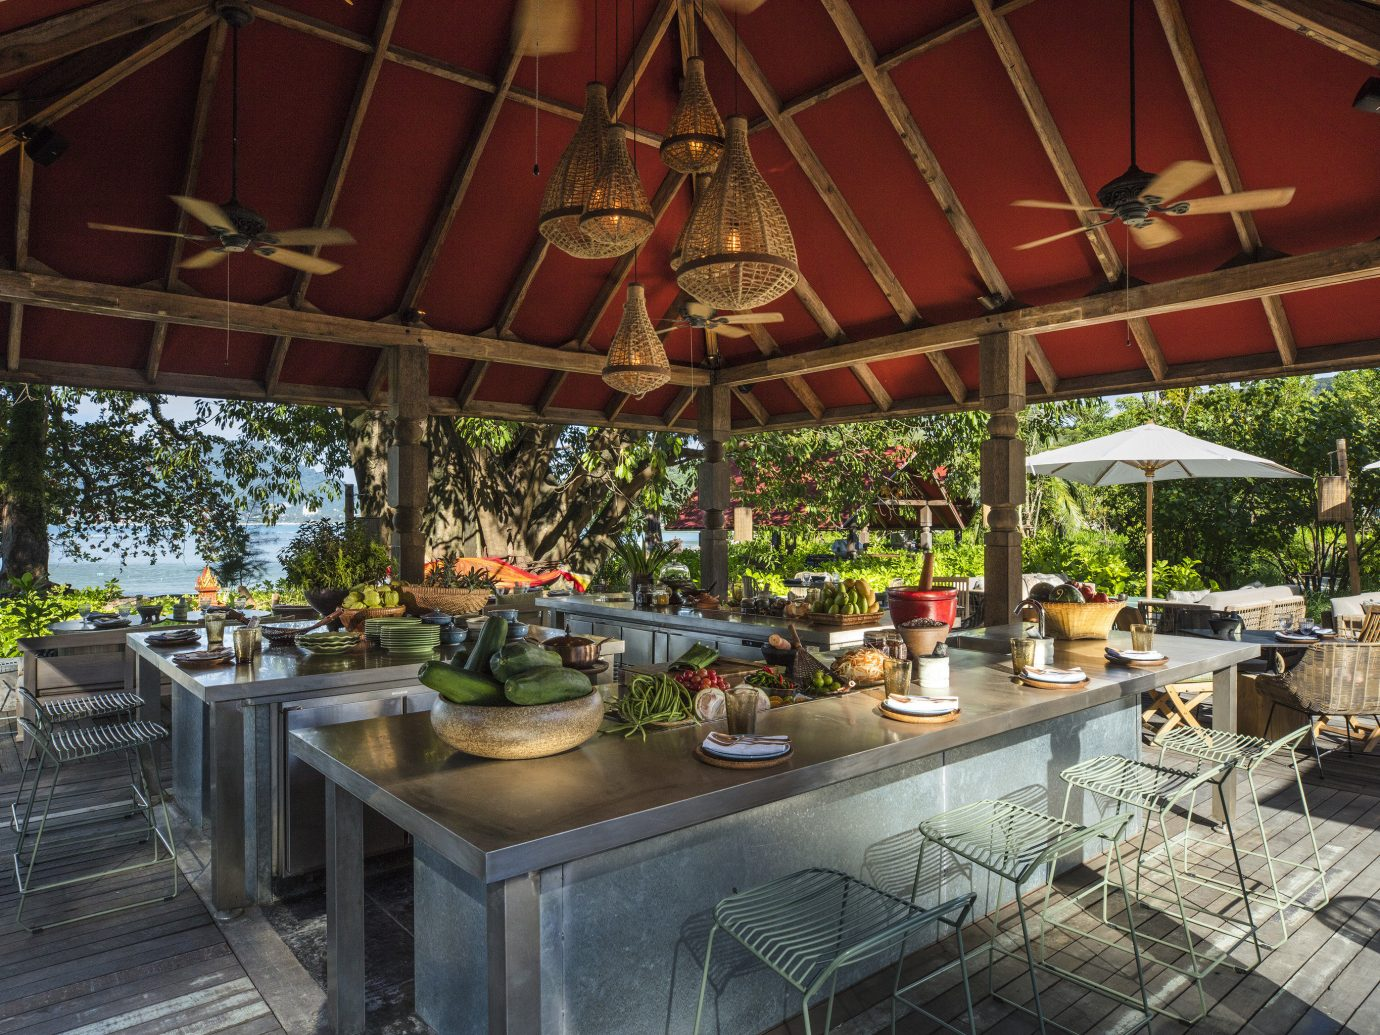 building real estate outdoor structure Patio Resort roof estate